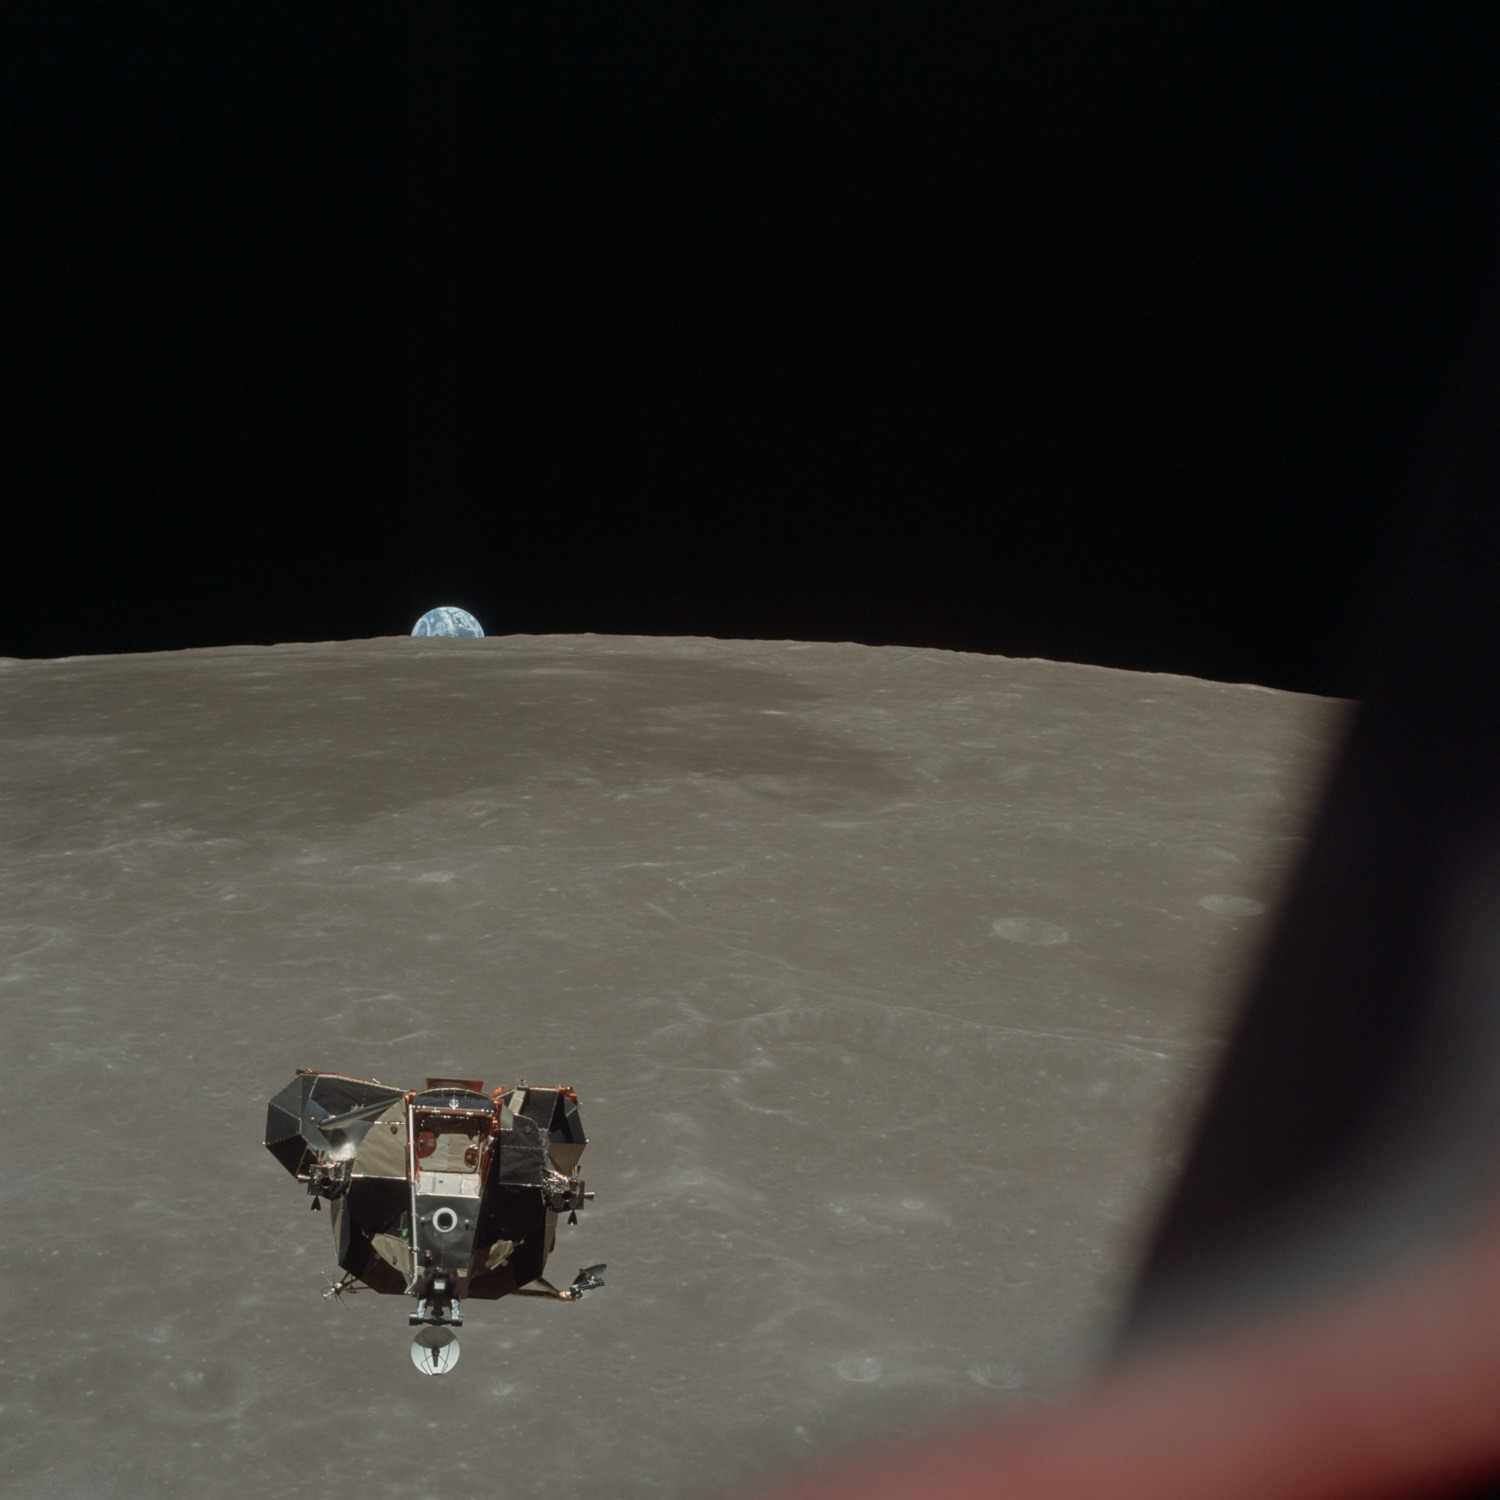 Apollo 11 Lunar Module ascent stage photographed from Command Module. Credit: Michael Collins, NASA ID: AS11-44-6634